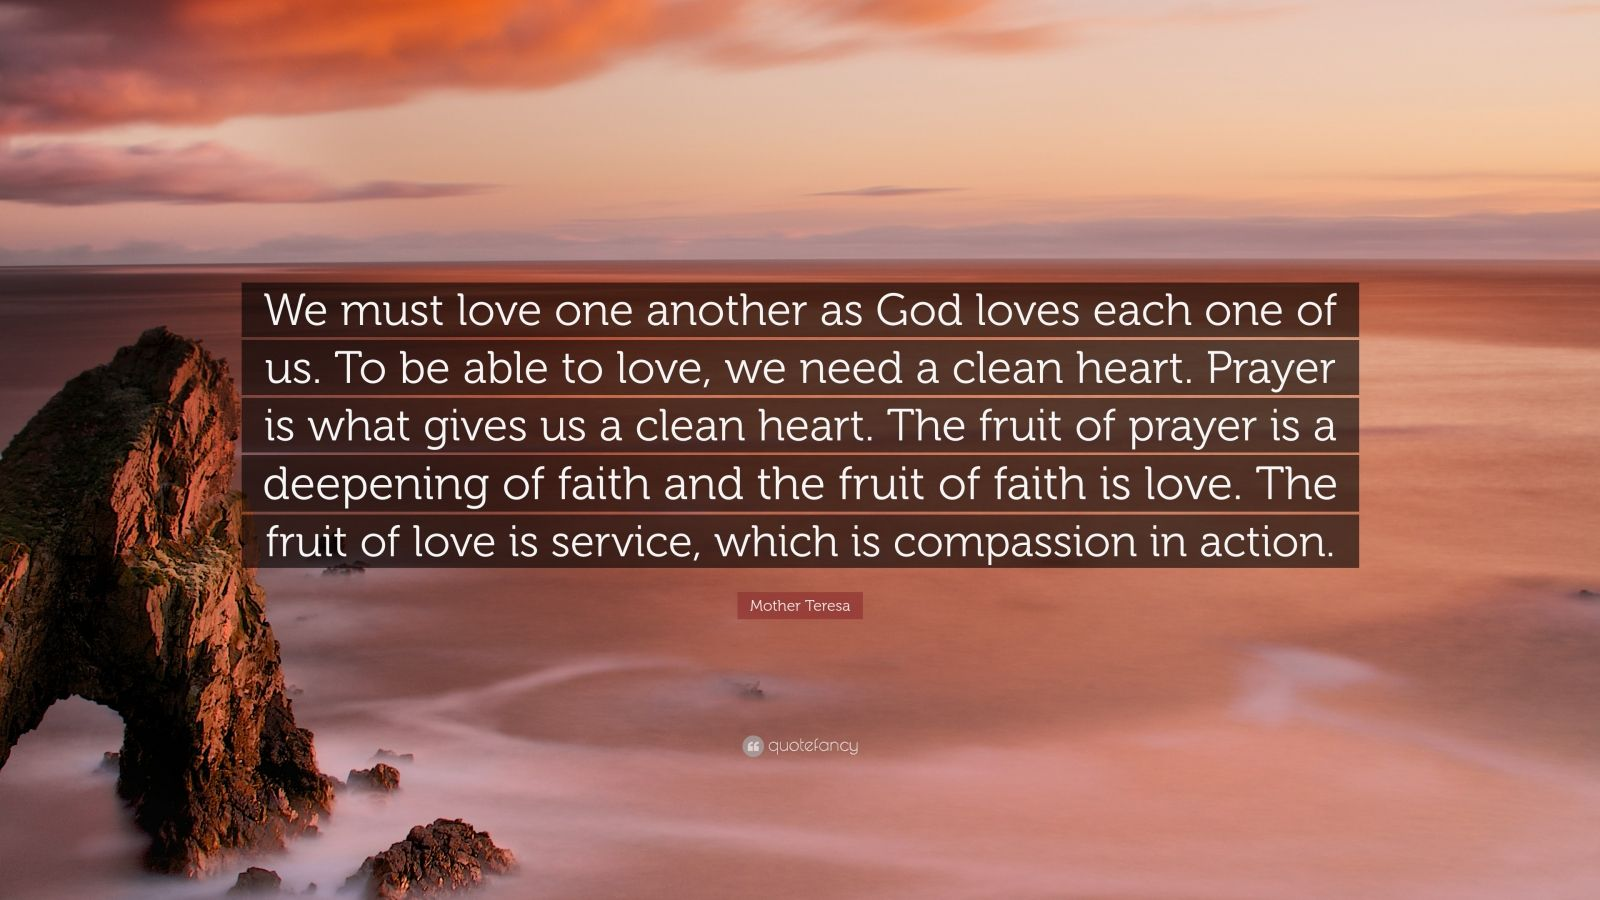 "Mother Teresa Quote: ""We must love one another as God loves each one of us. To be able to love, we need a clean heart. Prayer is what gives us a clean heart. The fruit of prayer is a deepening of faith and the fruit of faith is love. The fruit of love is service, which is compassion in action."""